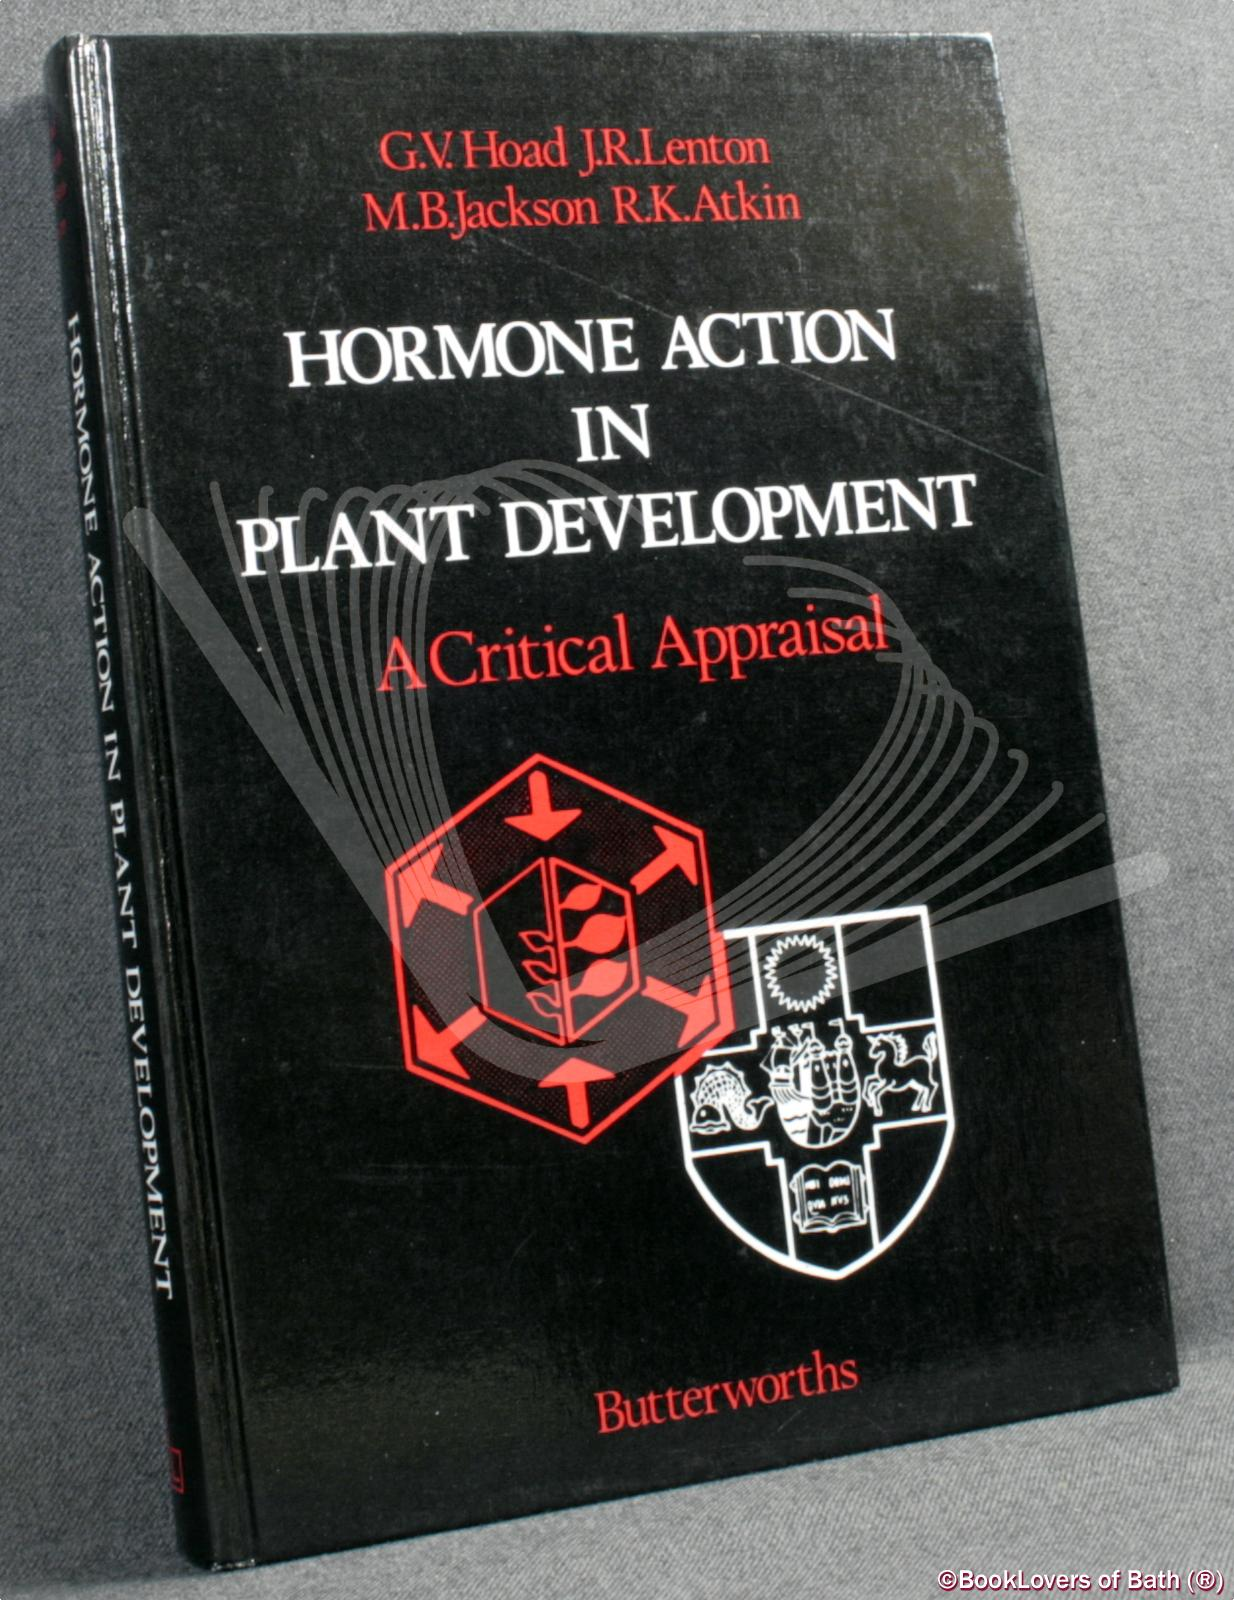 Hormone Action in Plant Development: A Critical Appraisal - Edited by G. V. Hoad, J. R. Lenton, M. B. Jackson & R. K. Atkin